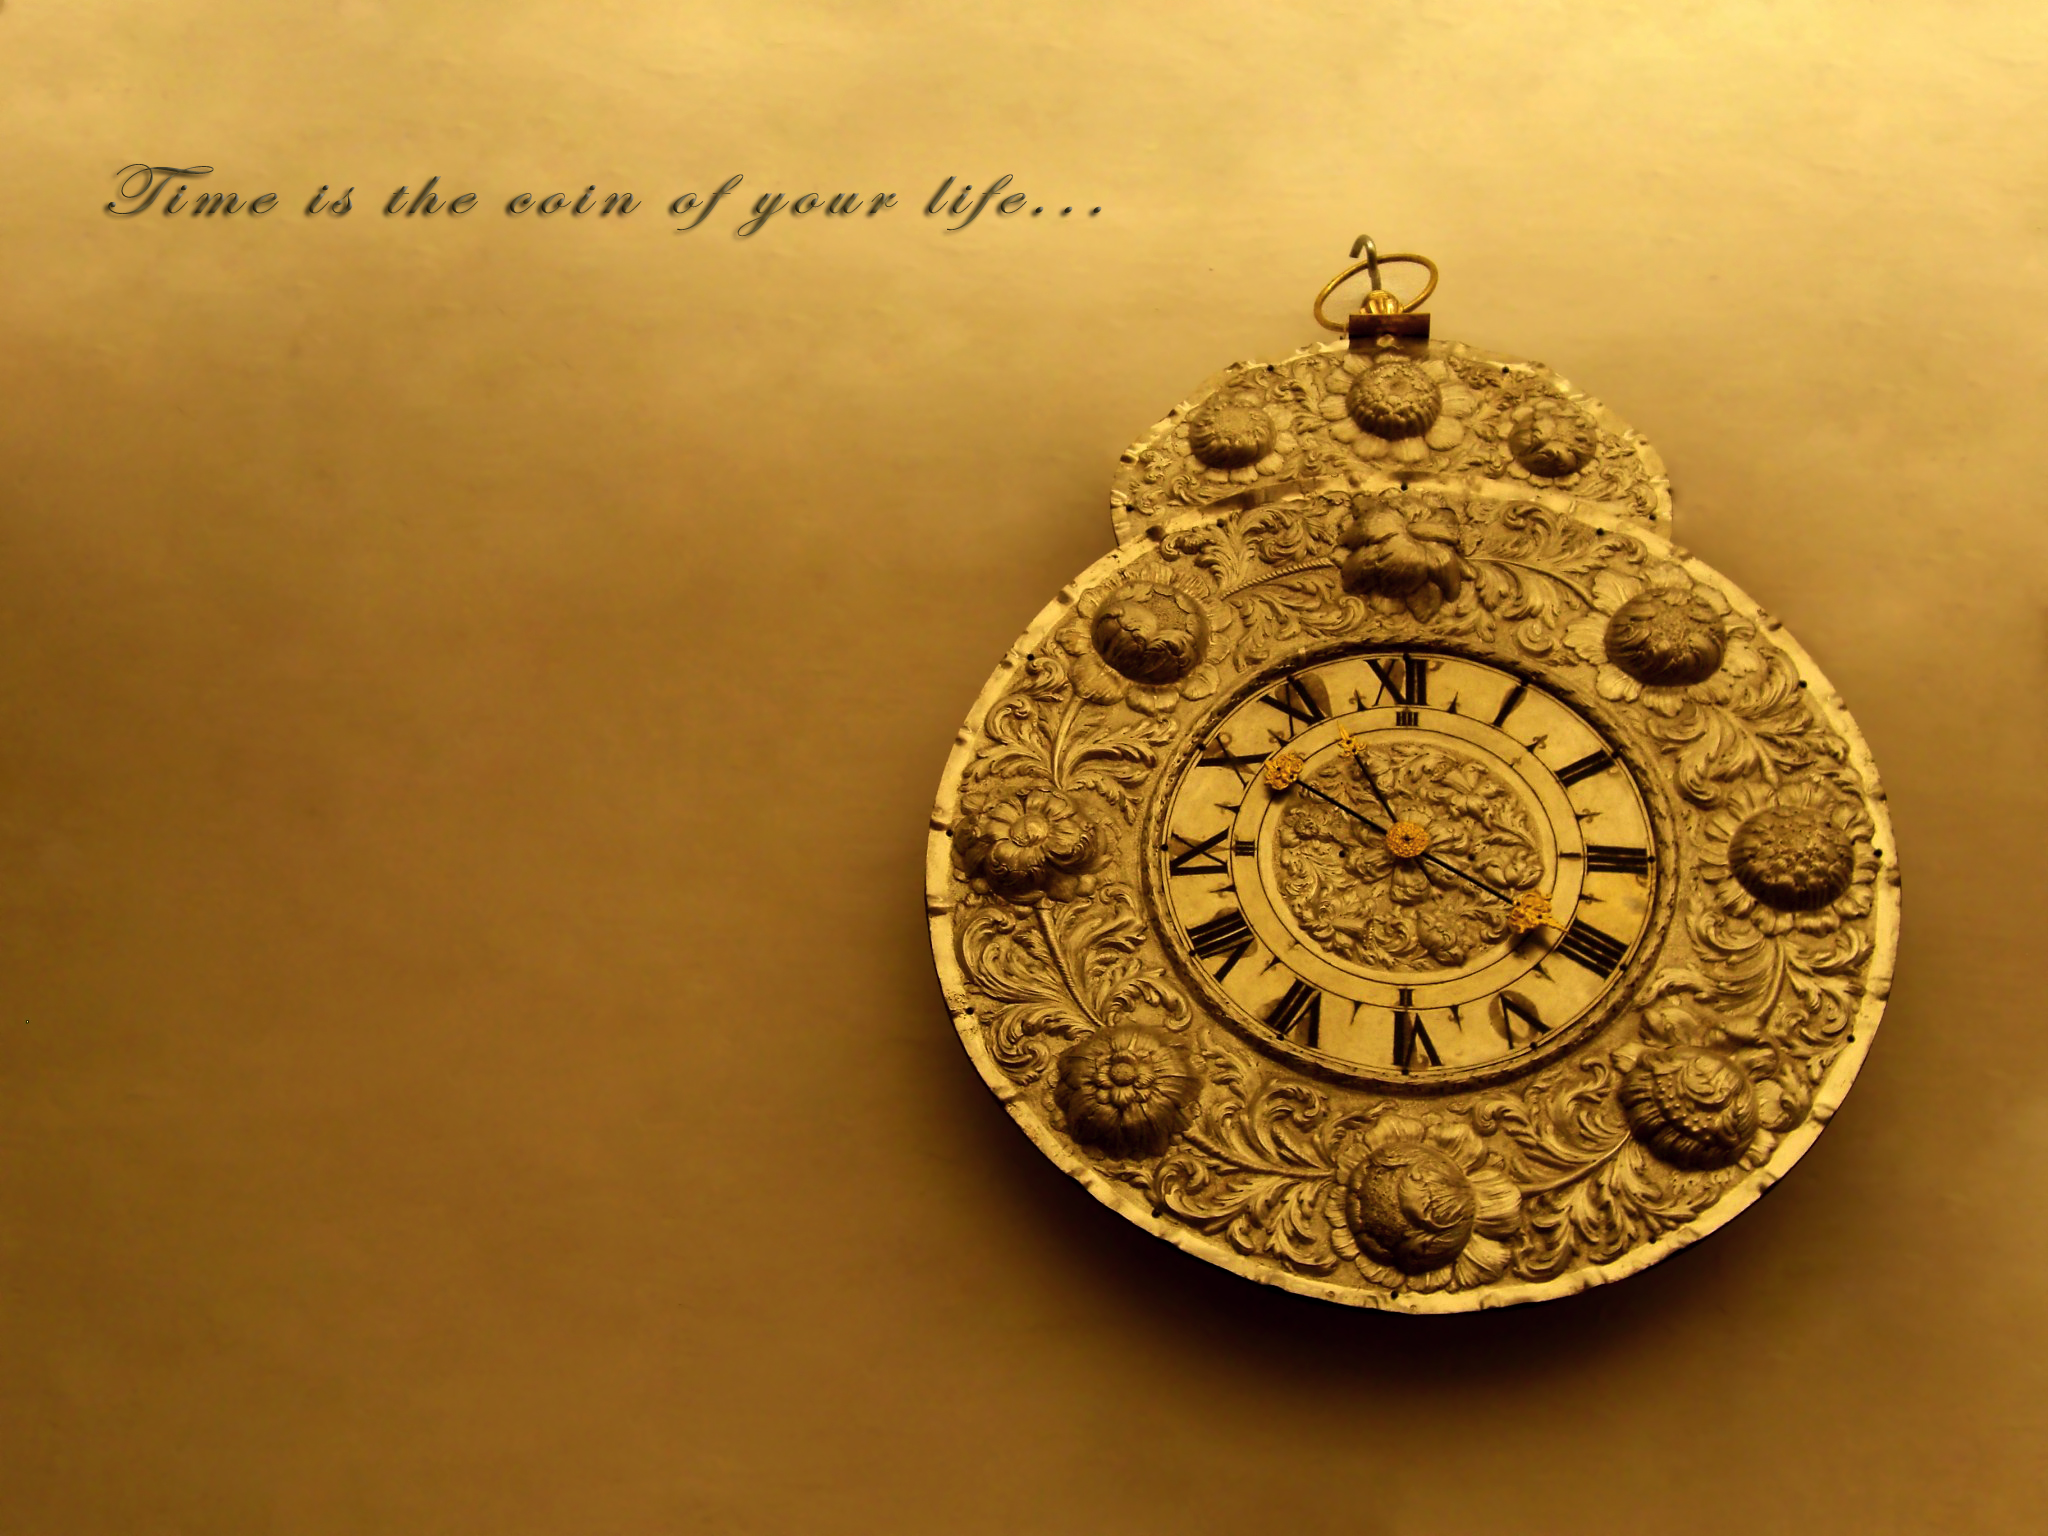 Time_is_the_coin_of_your_life_by_coco19861.jpg (2048×1536)